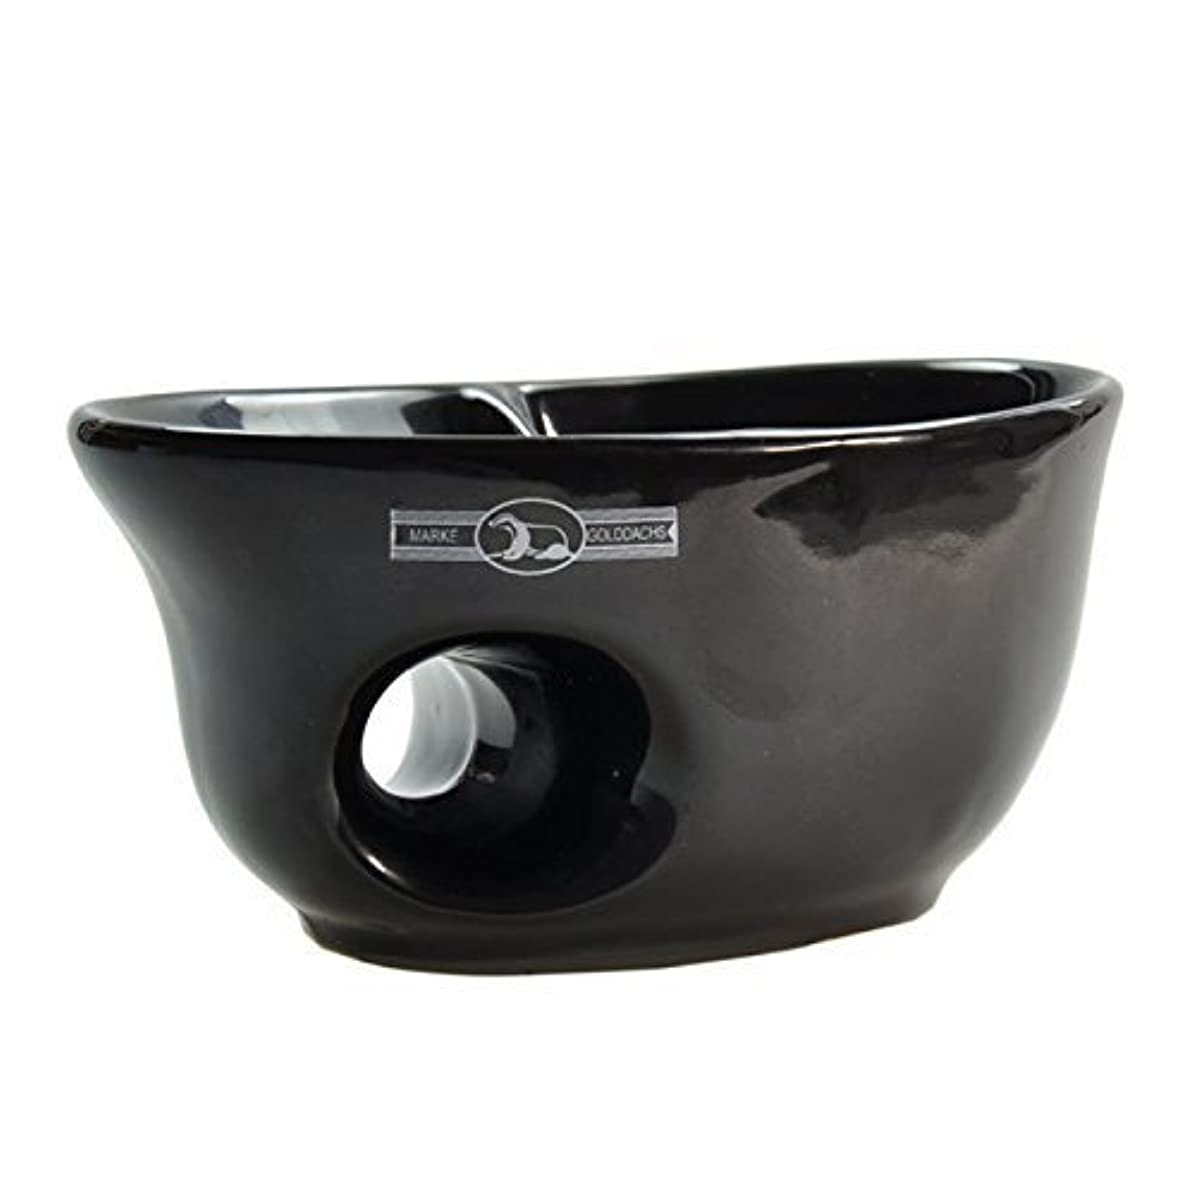 つま先ベット罪人Golddachs shaving pot, porcelain with finger hole, black